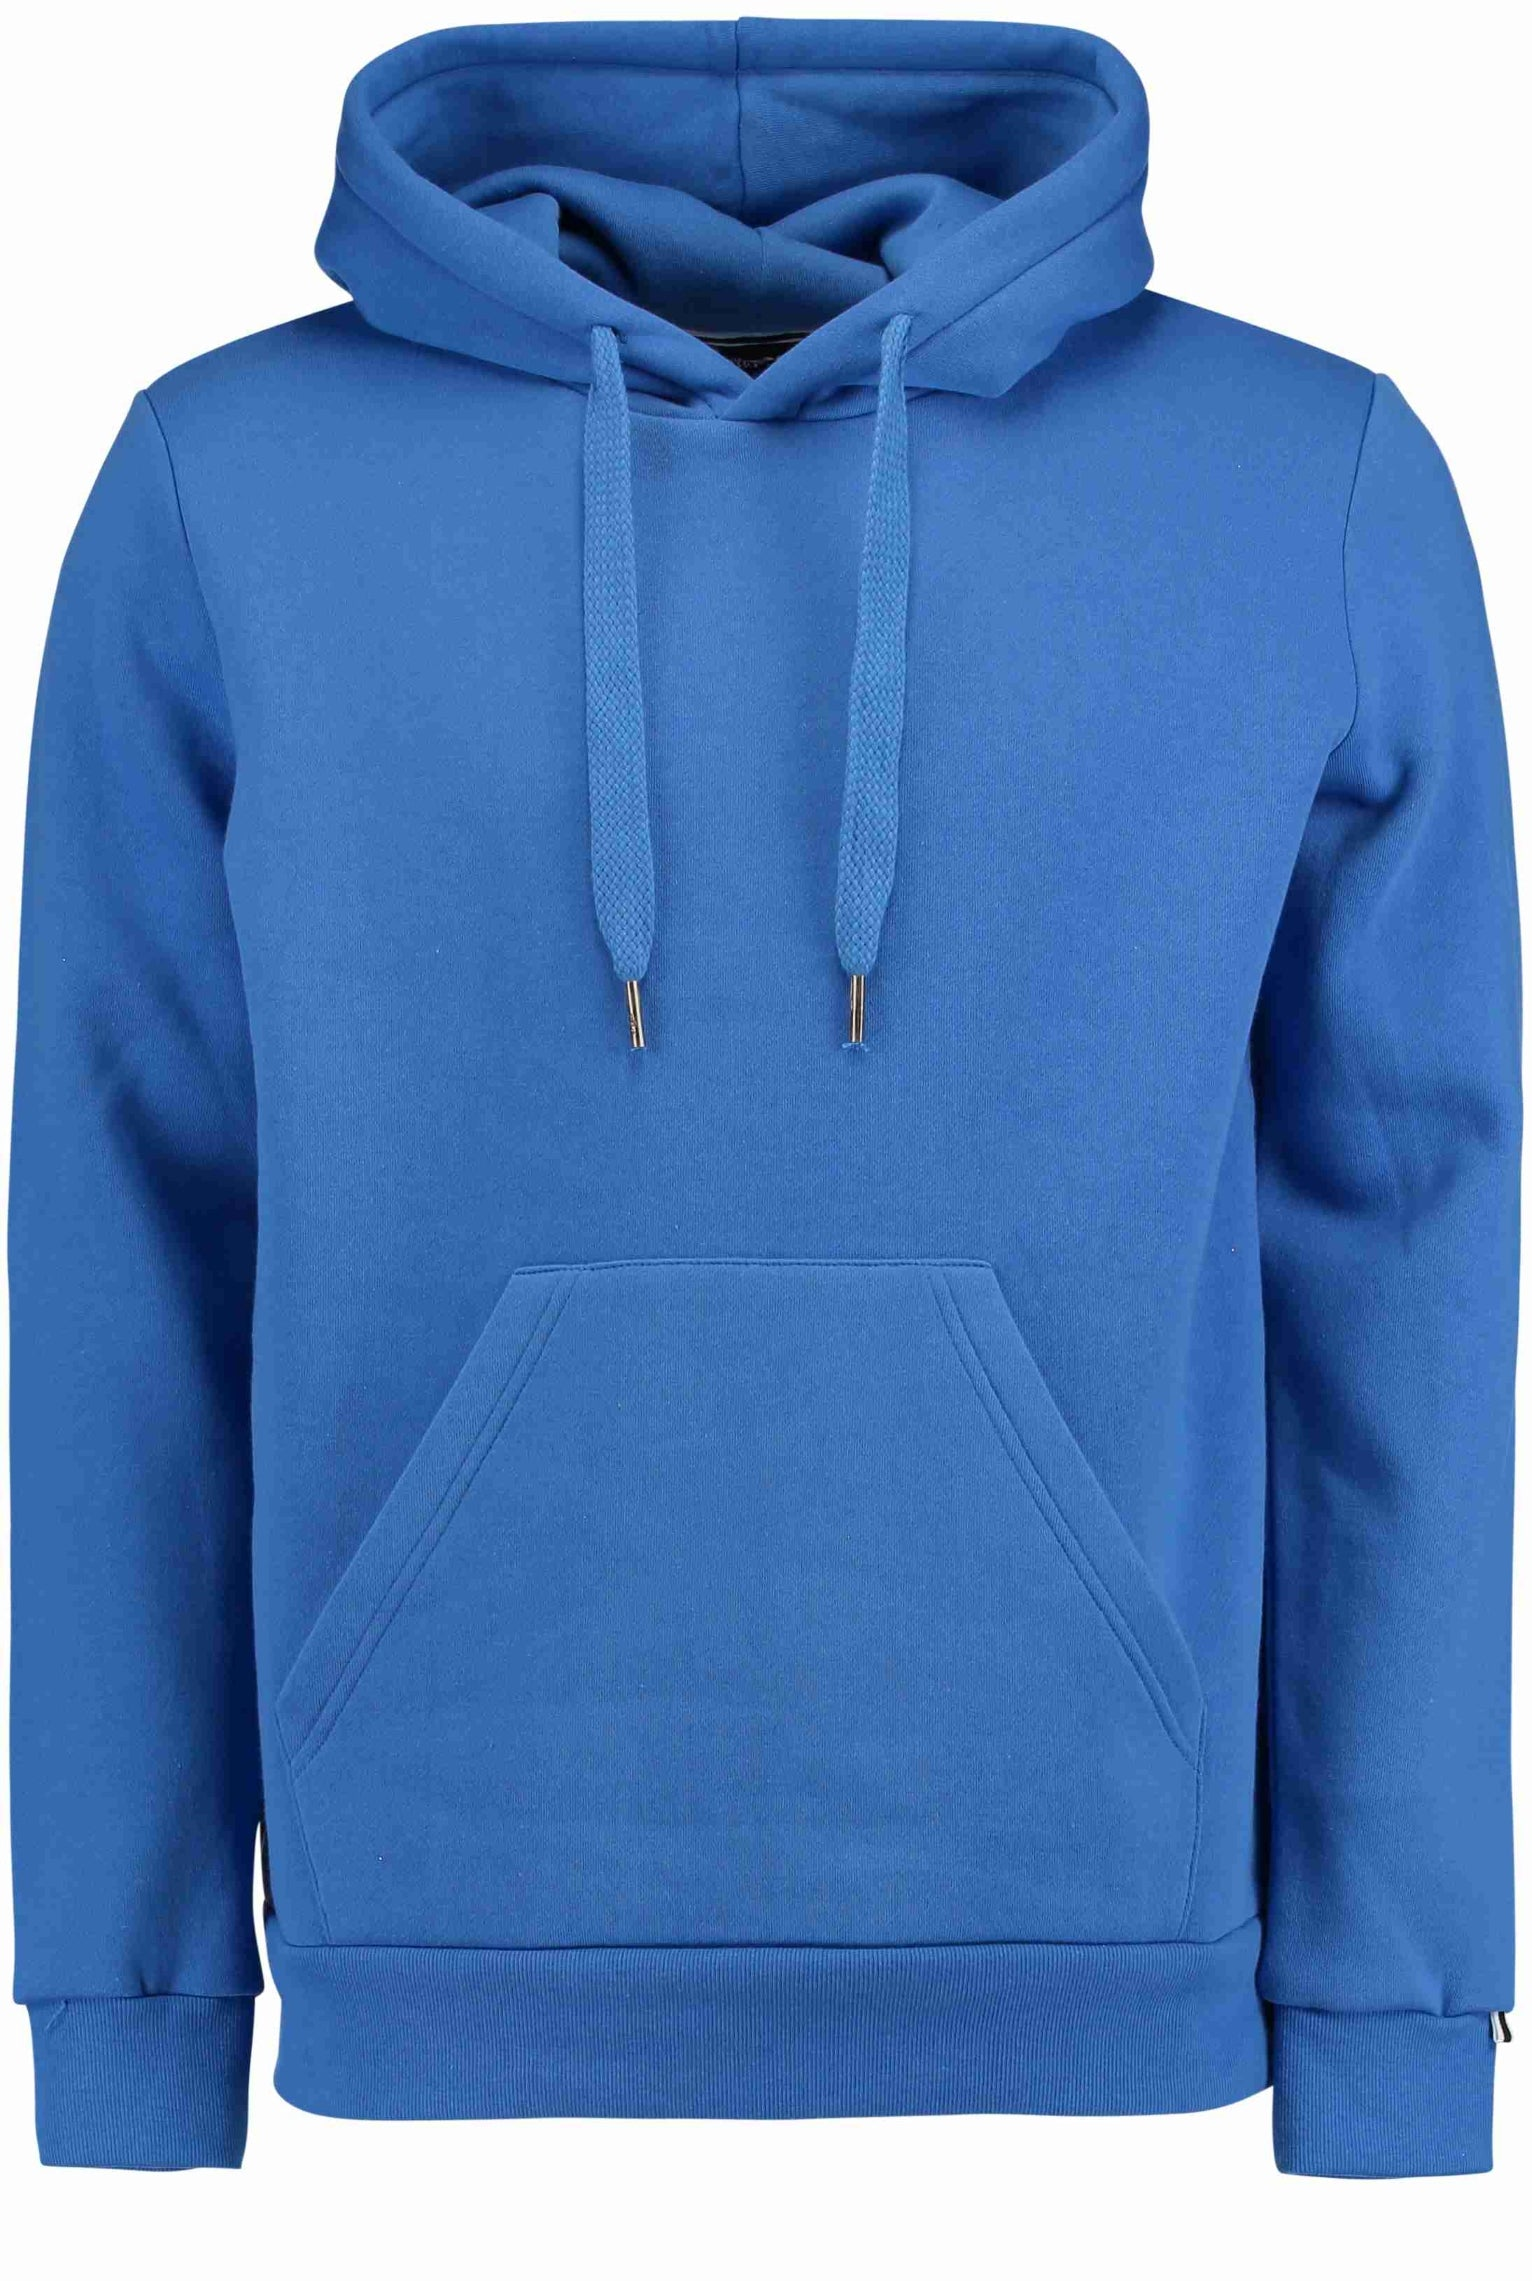 Men Hoodies - puzzlebrands.com